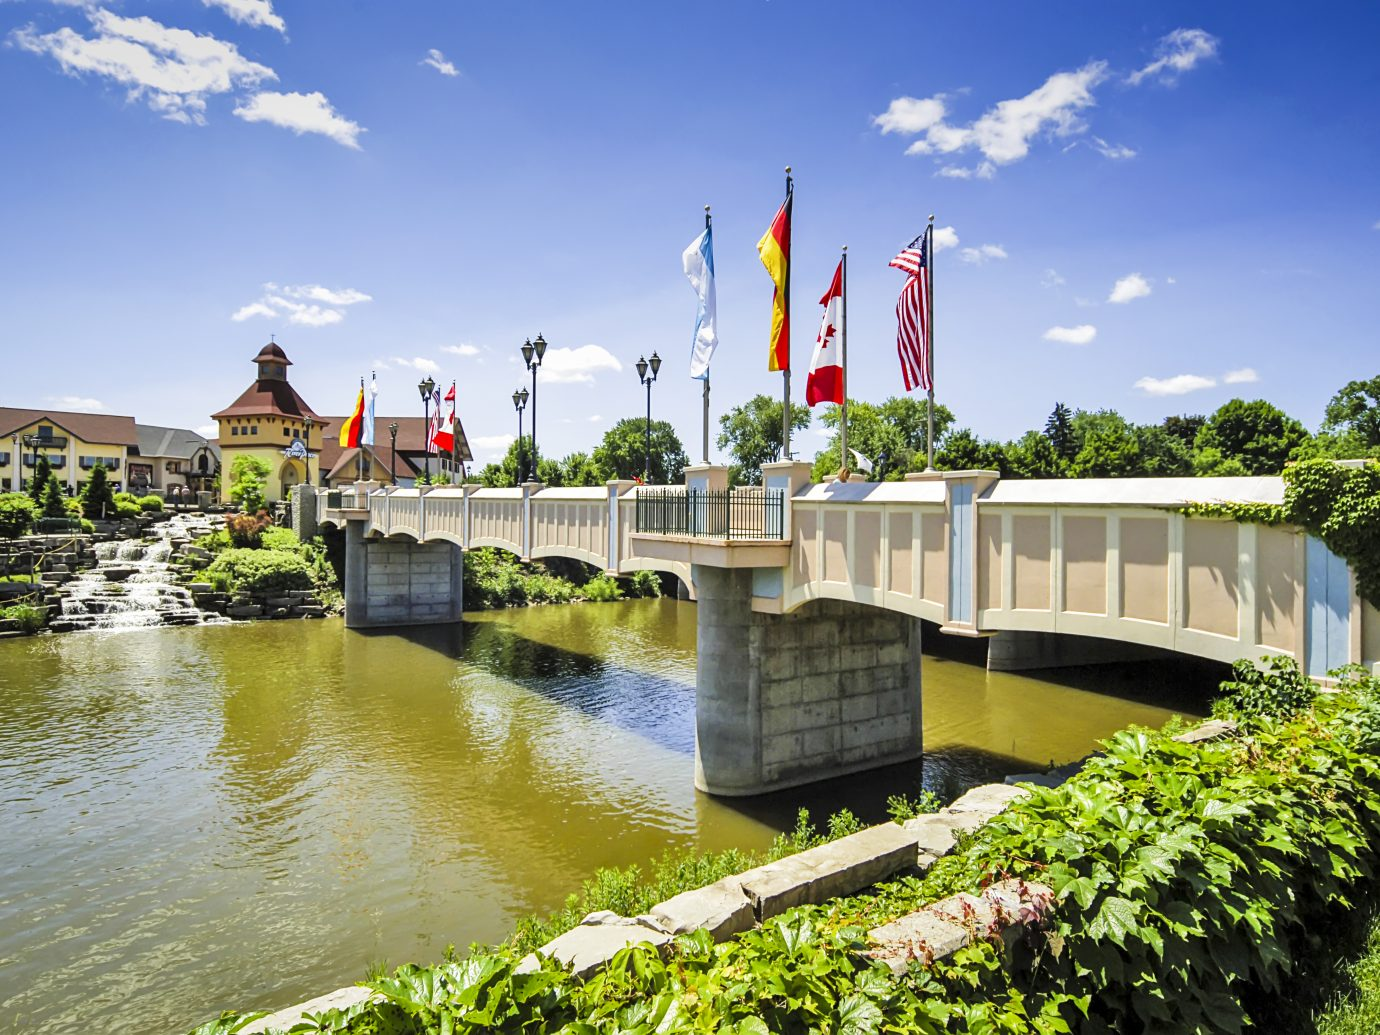 The International Bridge over the river Cass in Frankenmuth MI